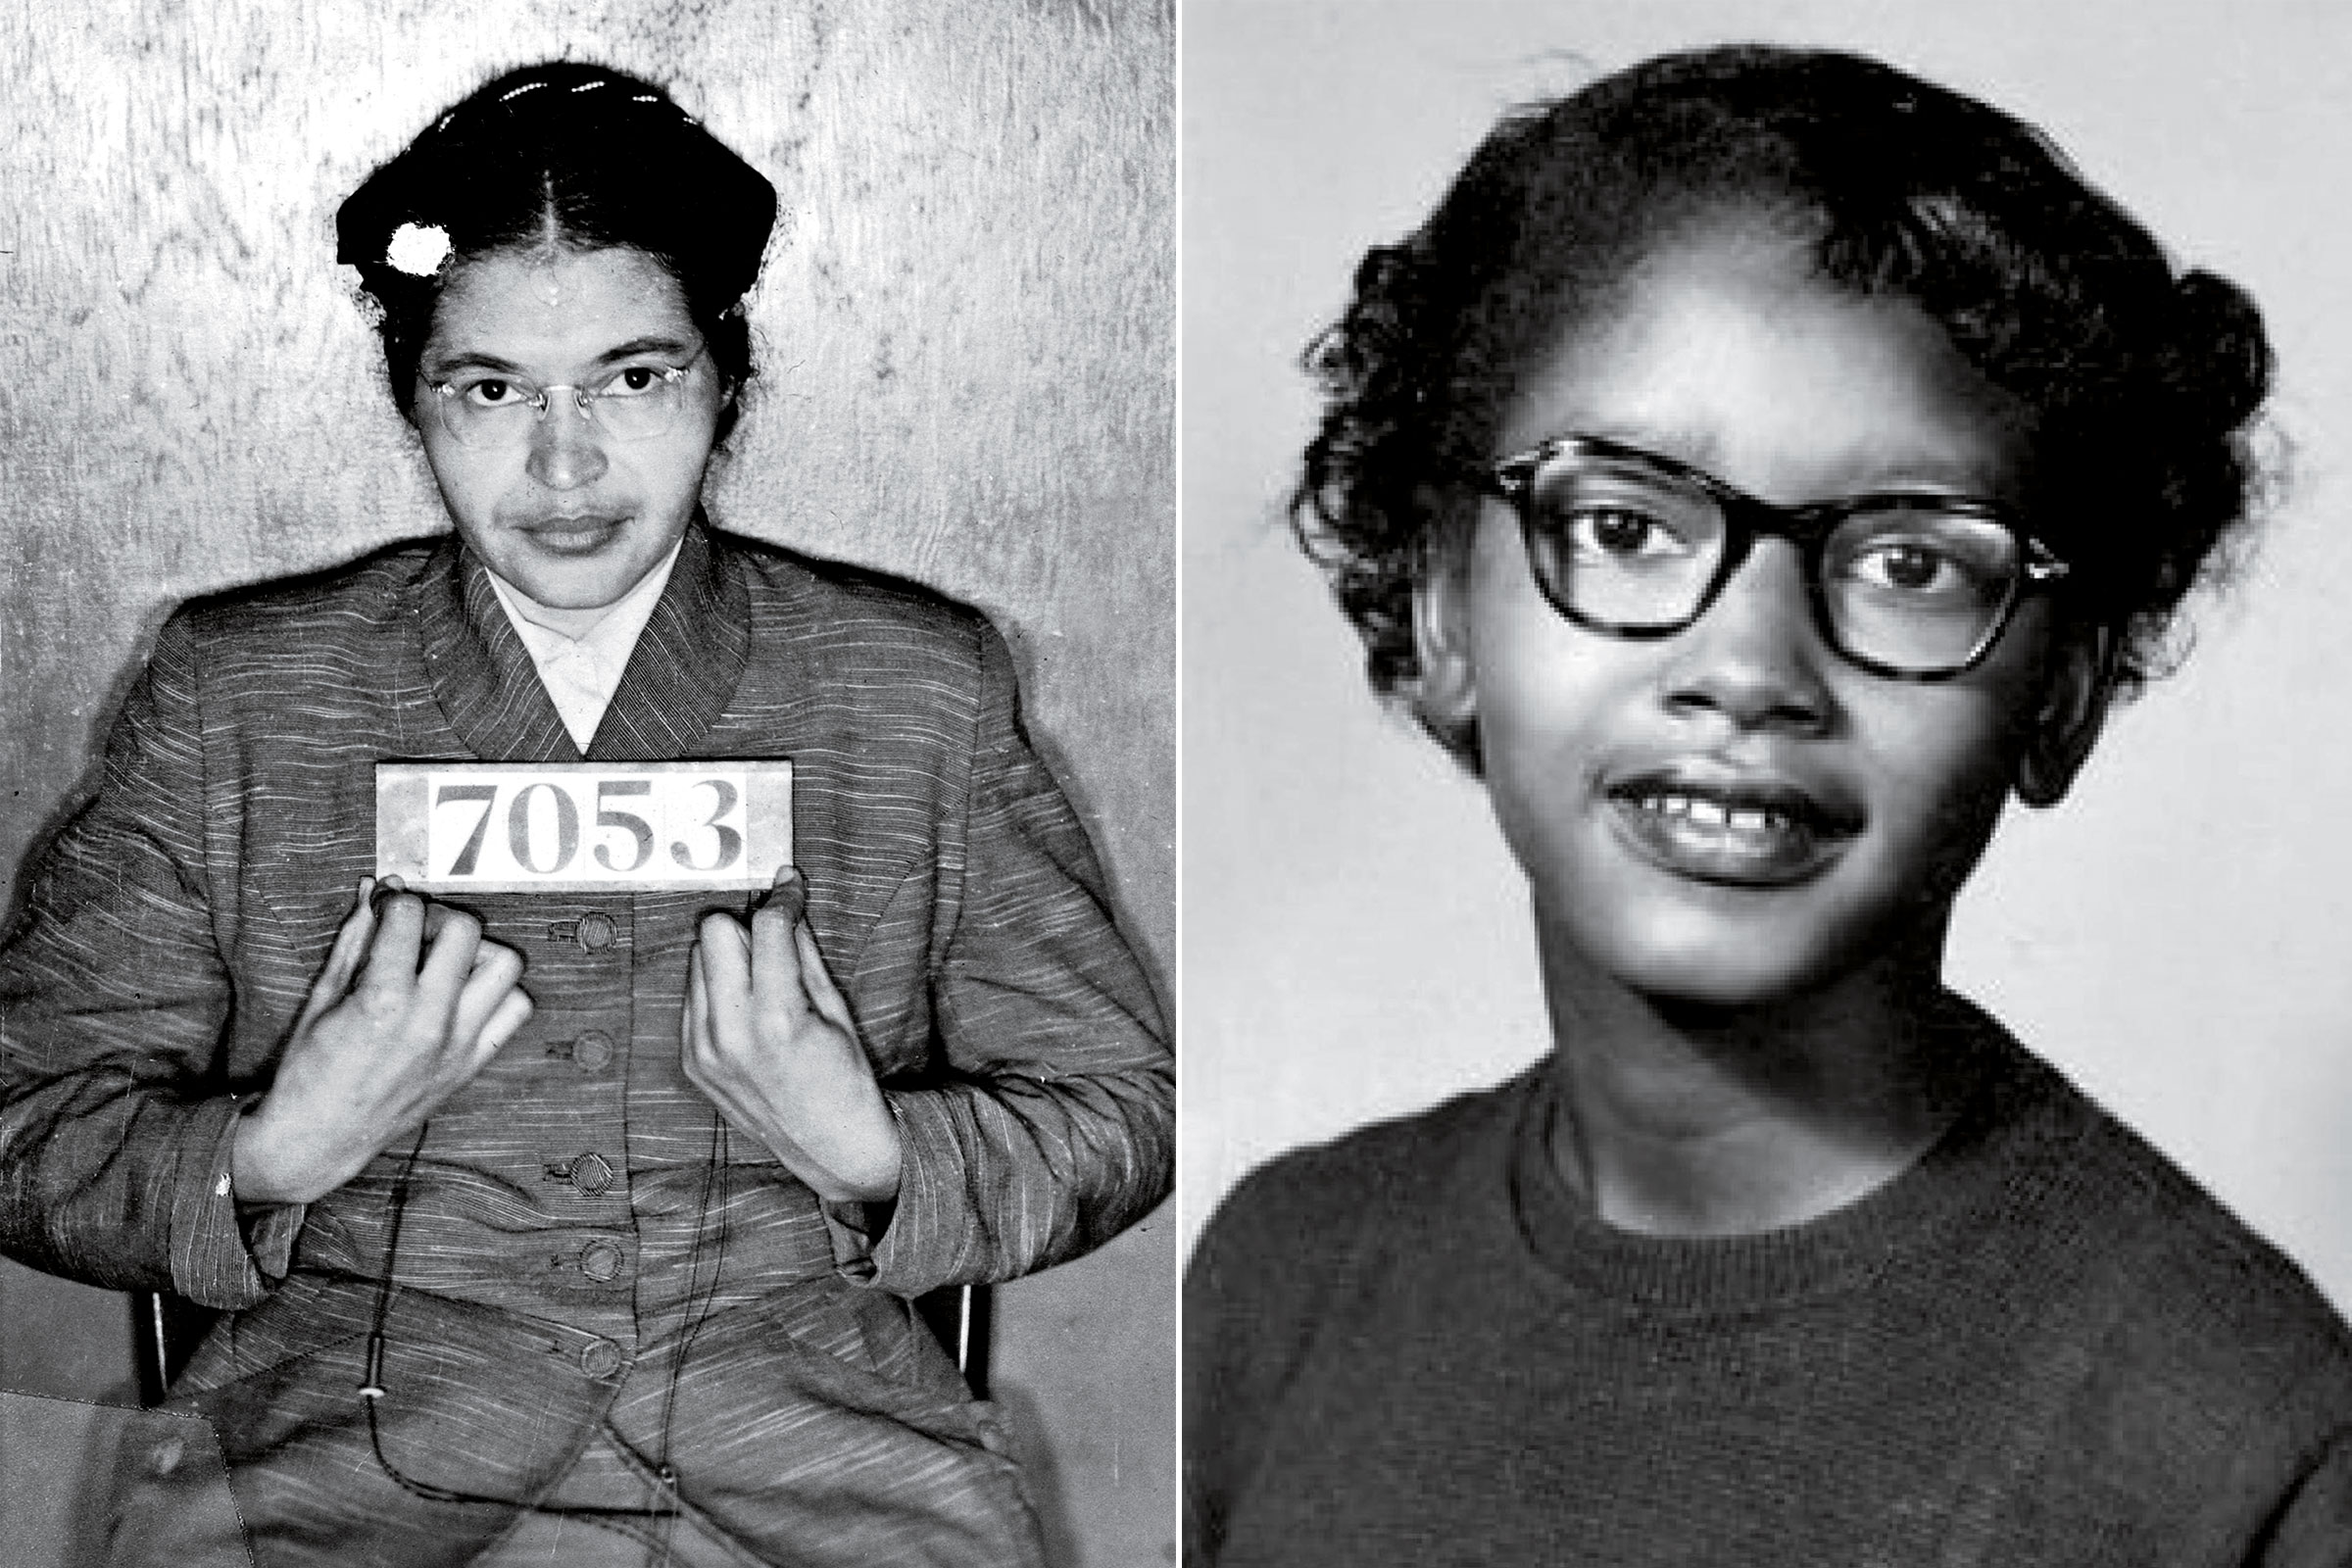 Claudette Colvin, right, refused to give up her seat on a bus in March 1955. Rosa Parks, left, was arrested later that year for refusing to give up her seat and arrested again in February 1956 (pictured) for participating in the Montgomery bus boycott.